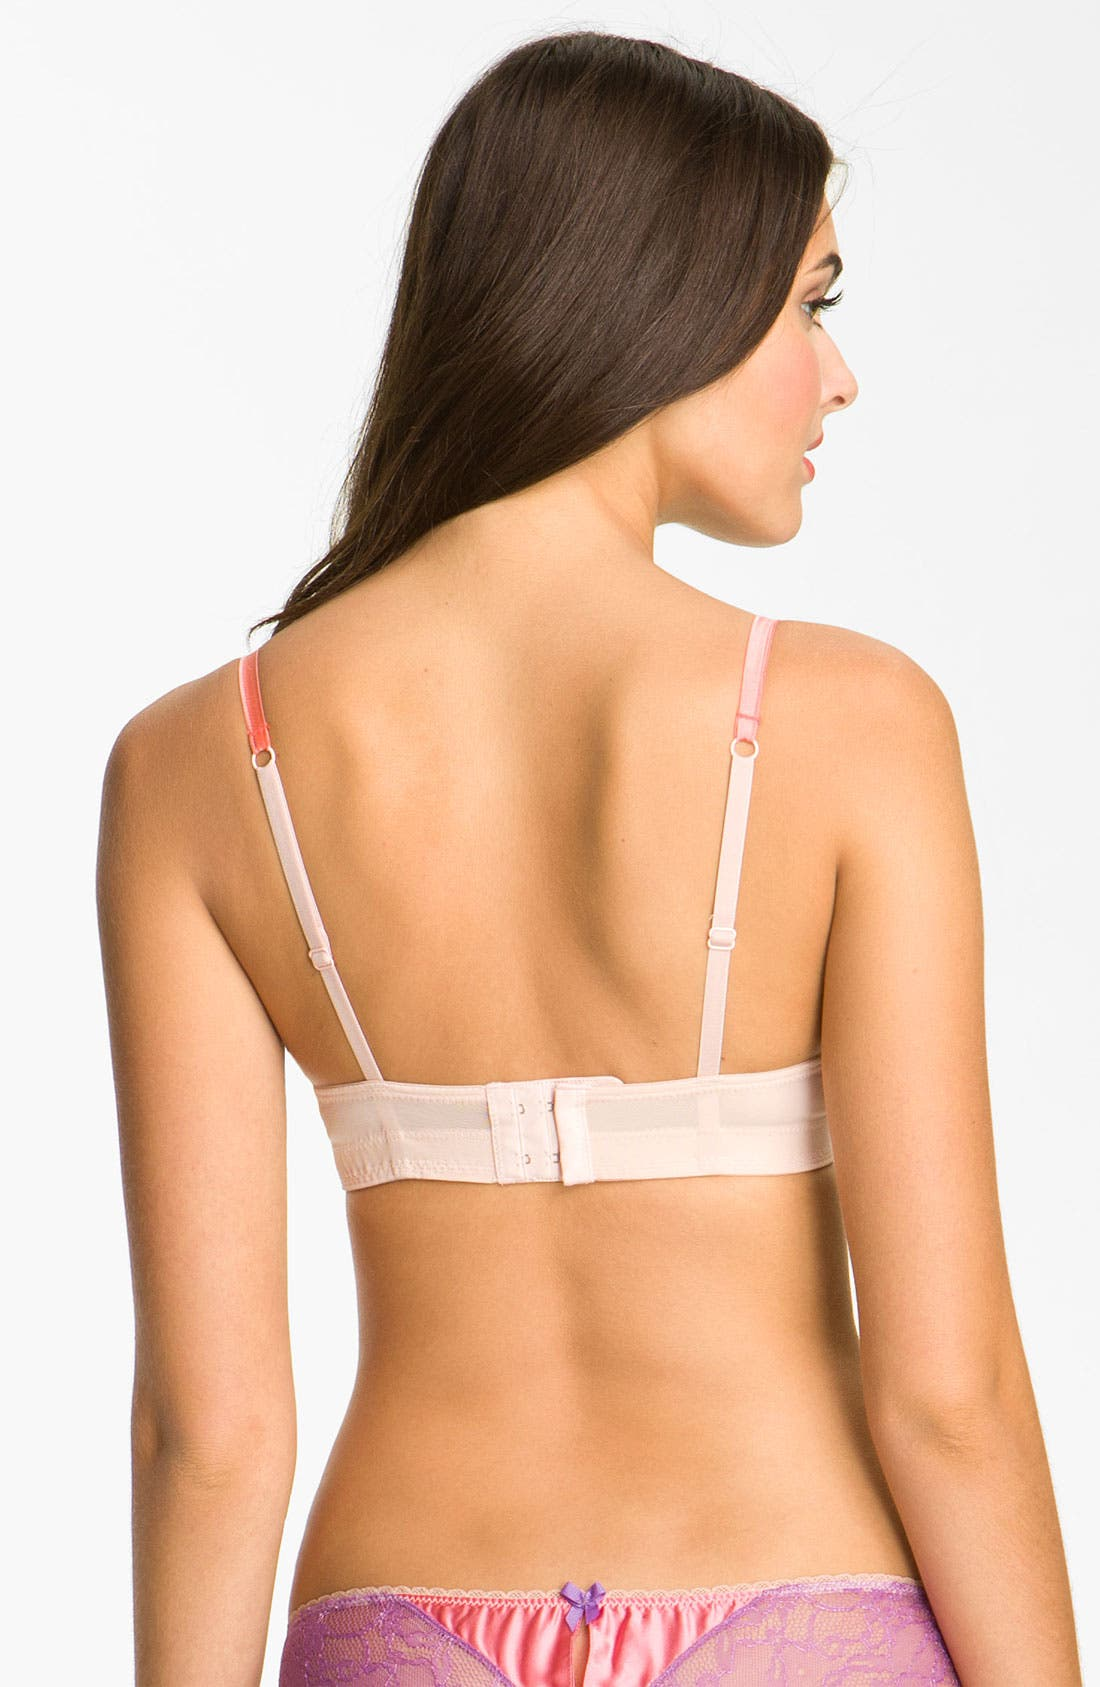 Alternate Image 2  - Mimi Holliday 'Dacquiri' Comfort Underwire Bra